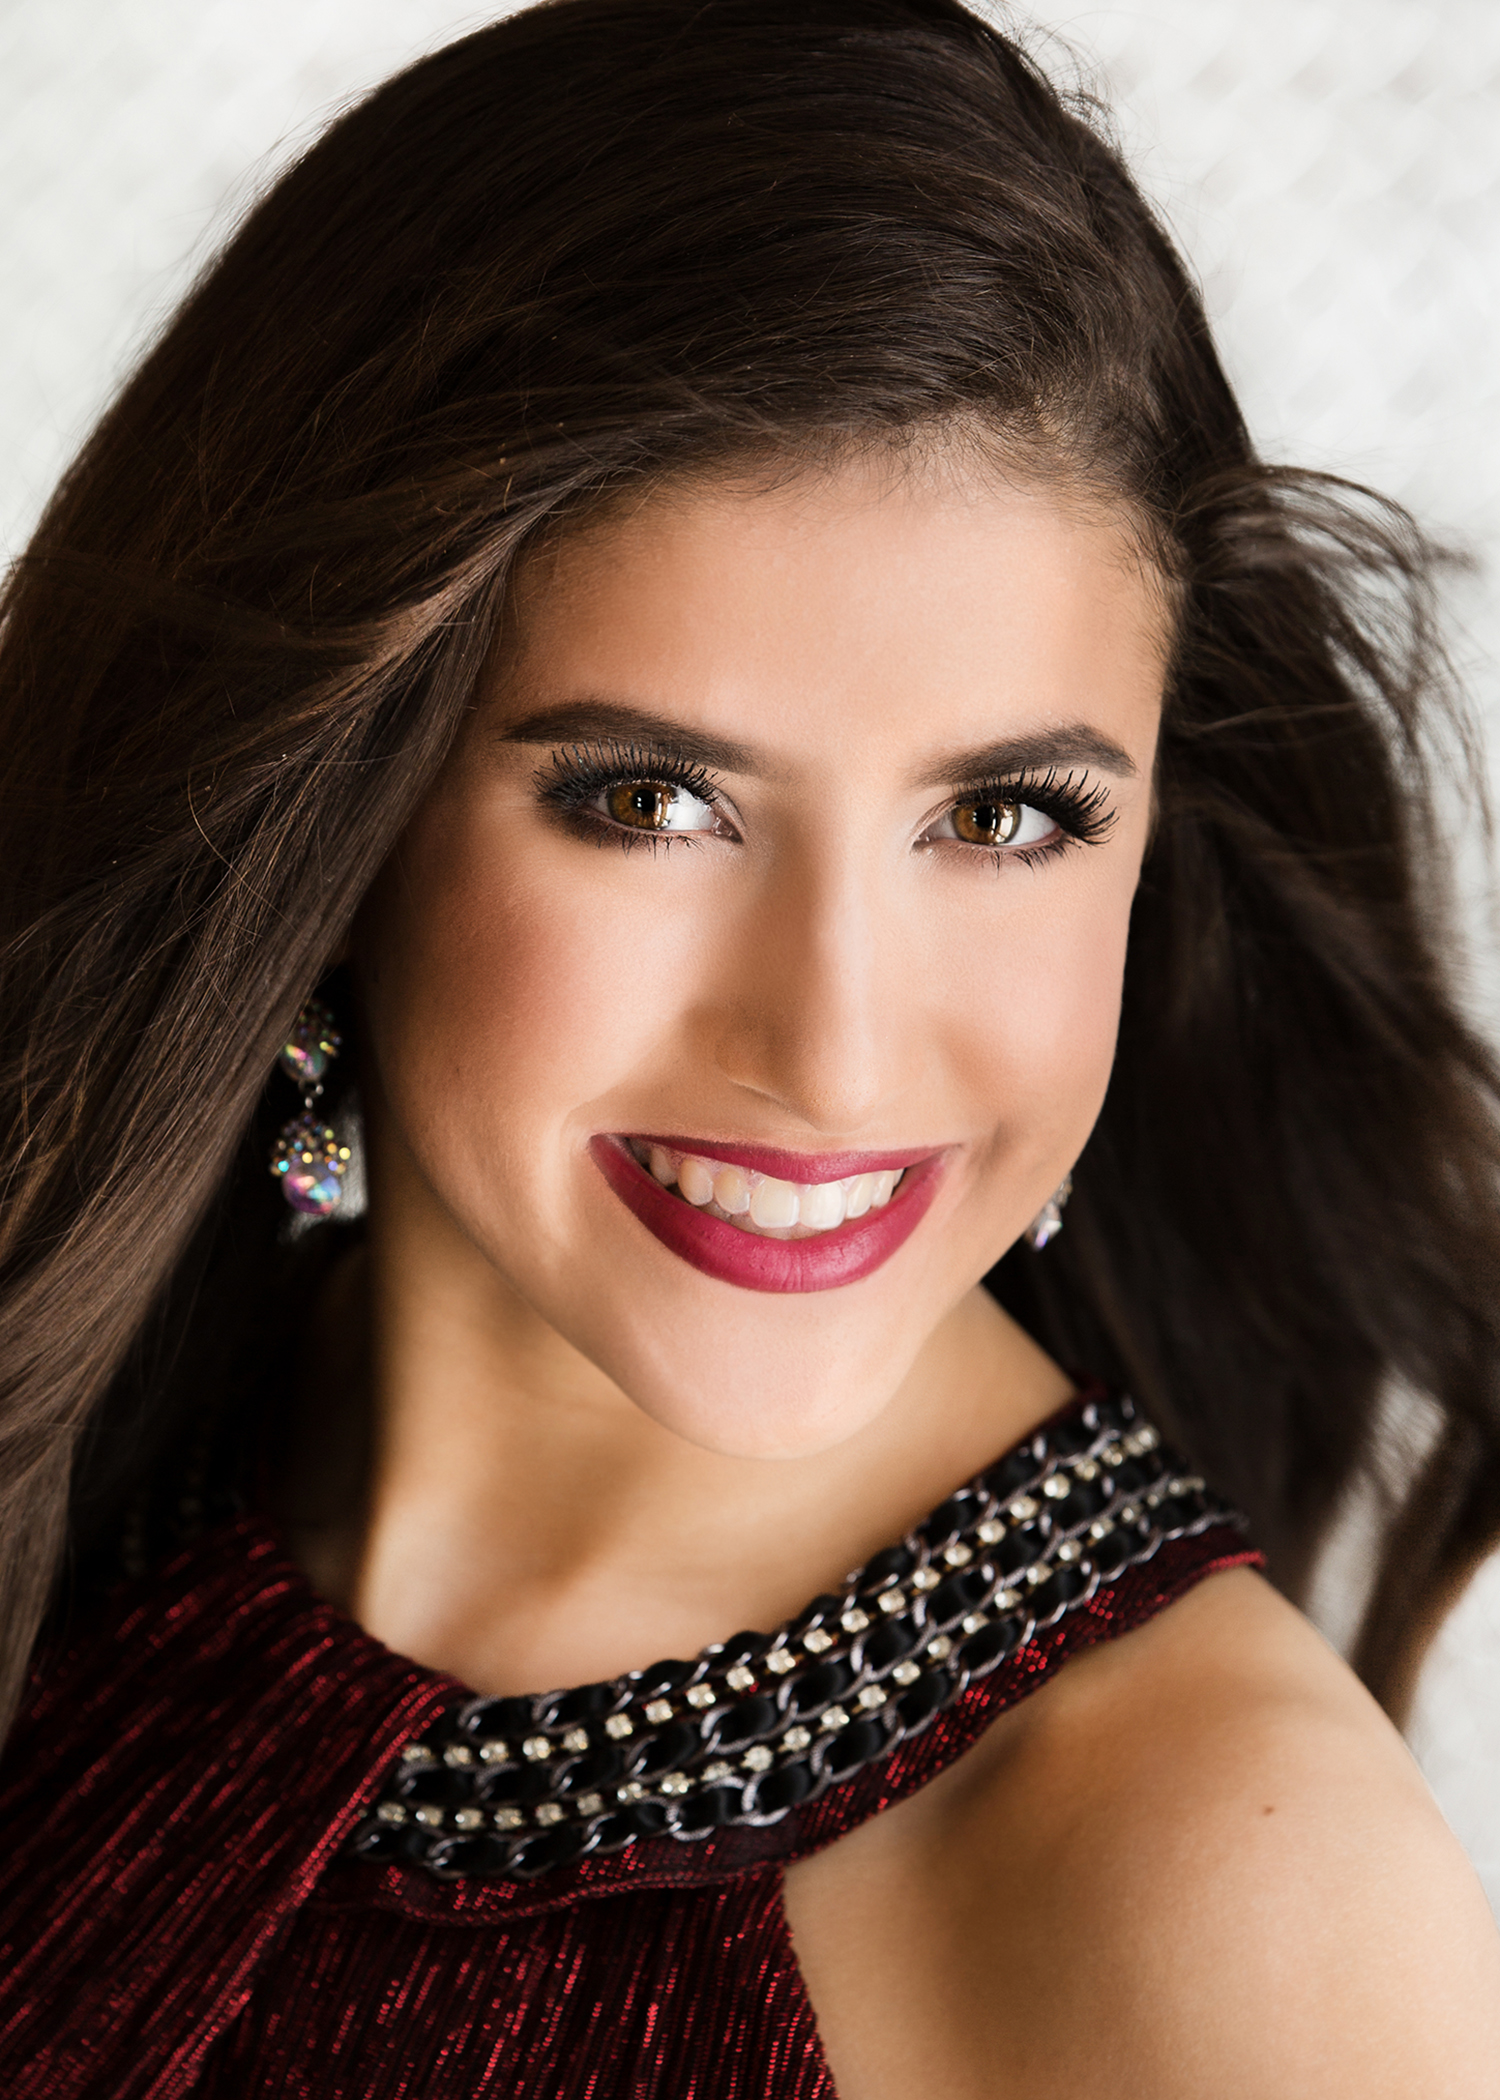 Miss Michigan's Outstanding Teen 2018